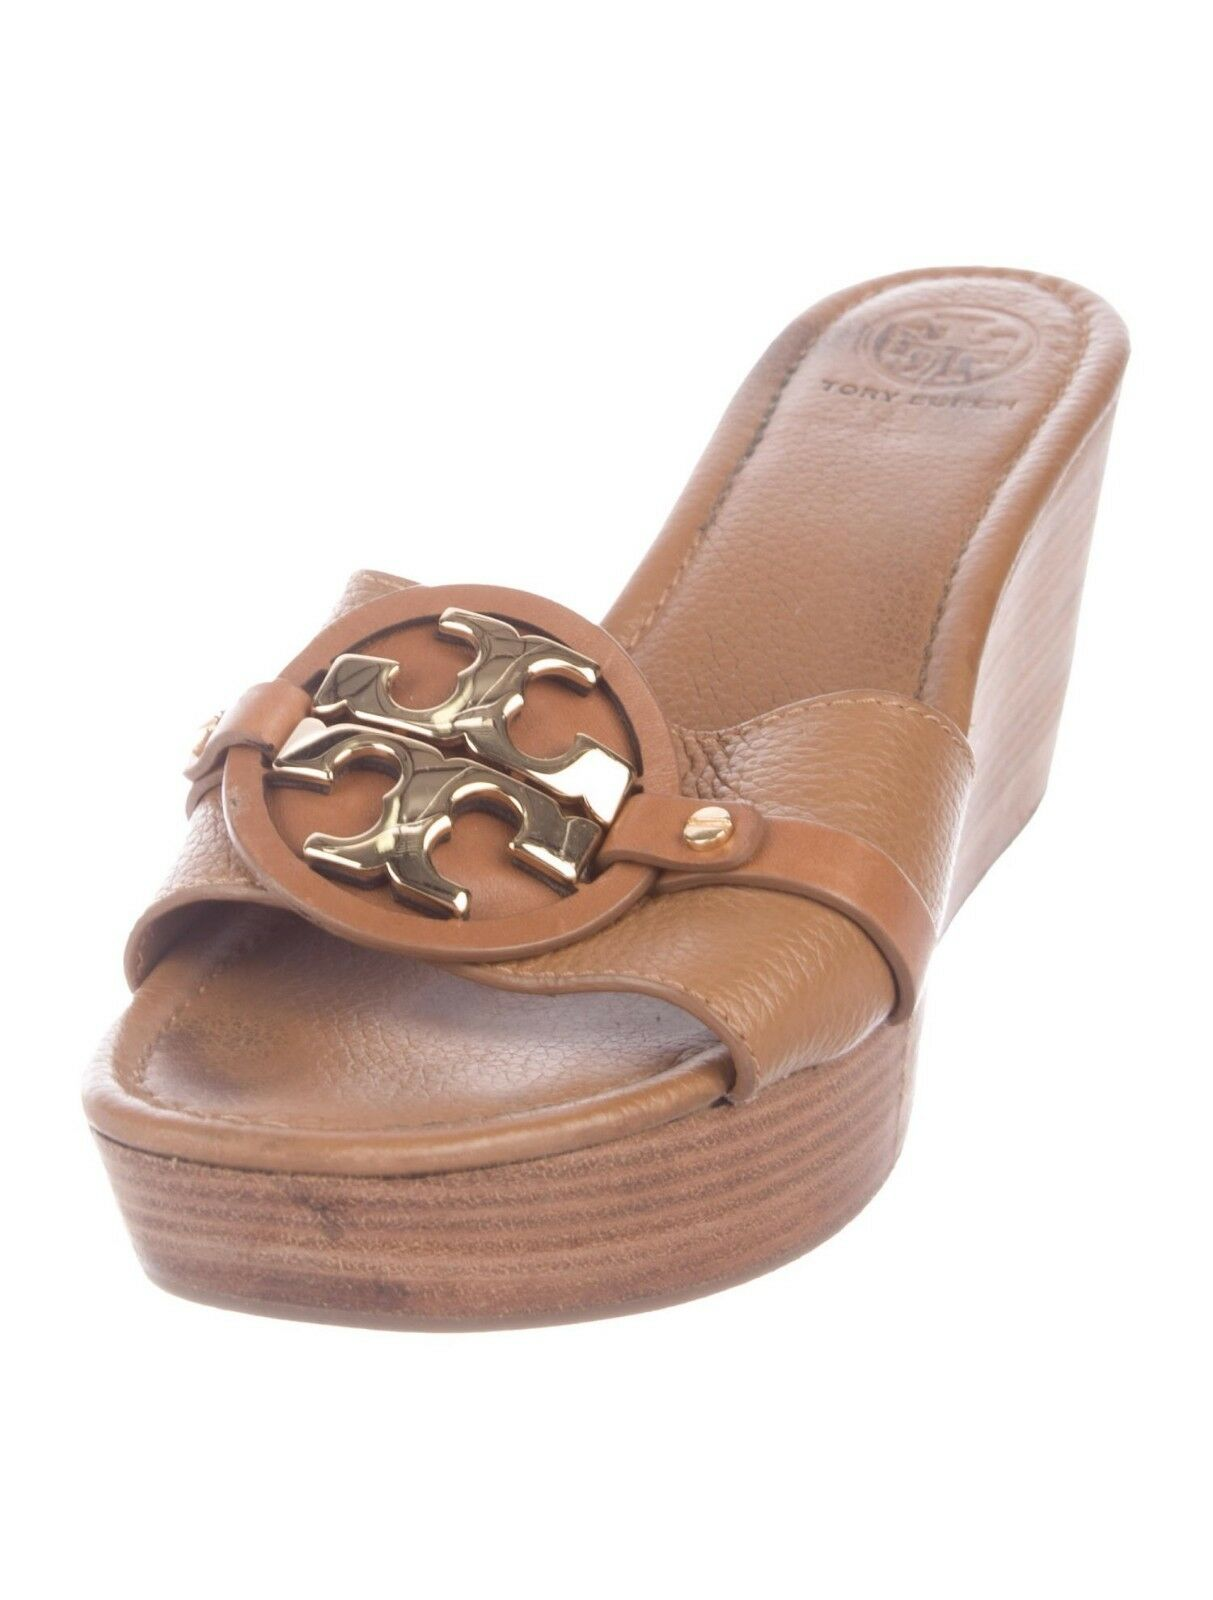 TORY BURCH WOMEN'S LOGO LEATHER WEDGE SLIDE BROWN CAMEL SANDAL SHOES 10.5 10 1 2